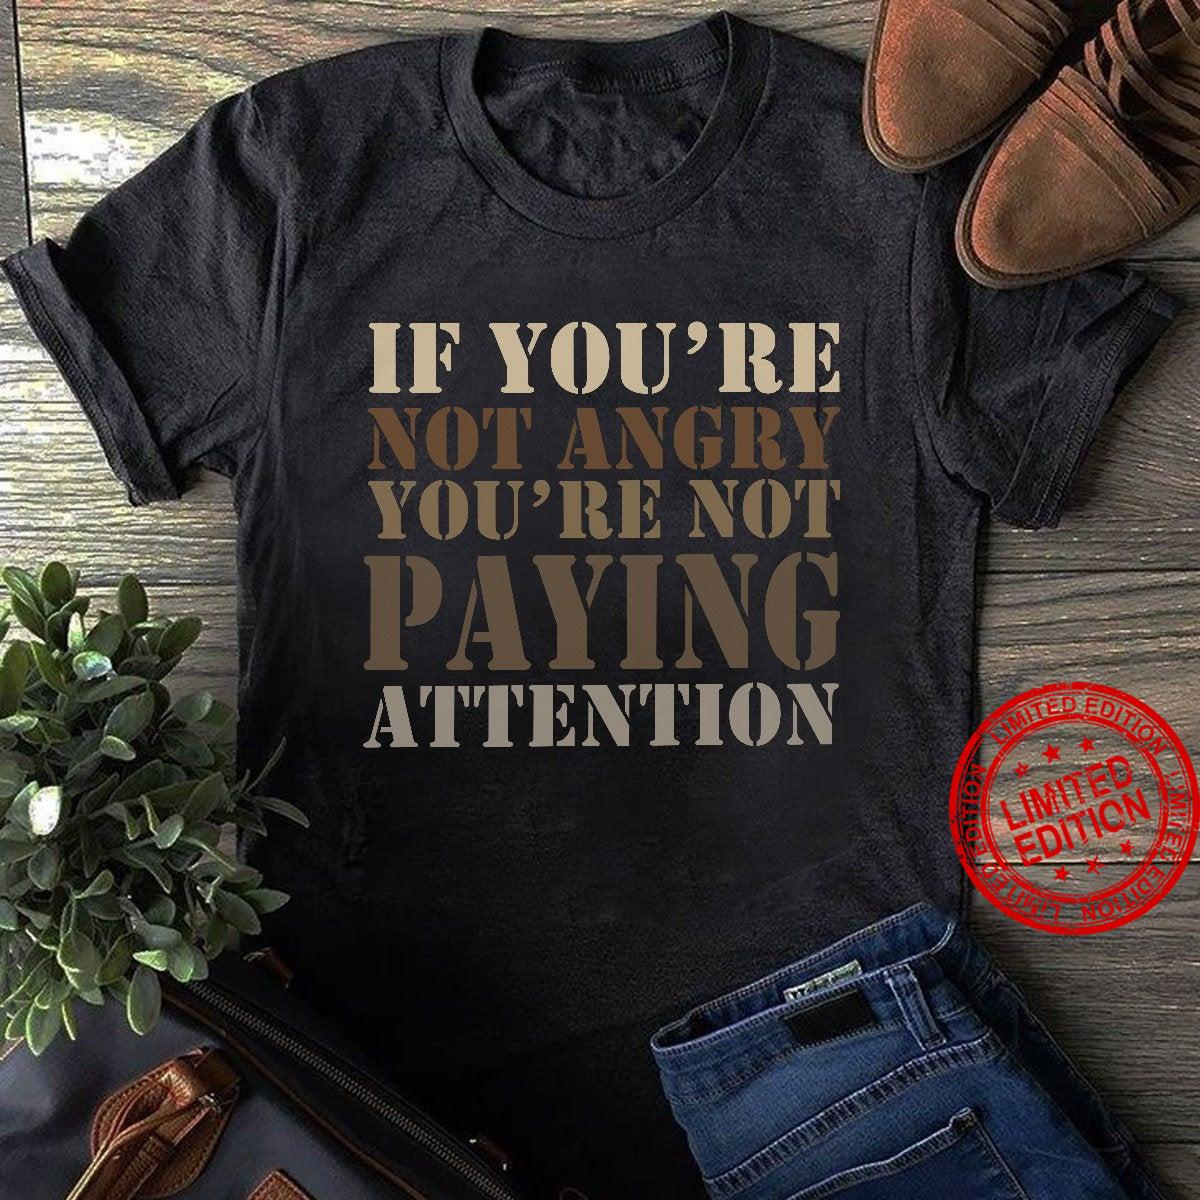 You're Not Angry You're Not Paying Attention Shirt